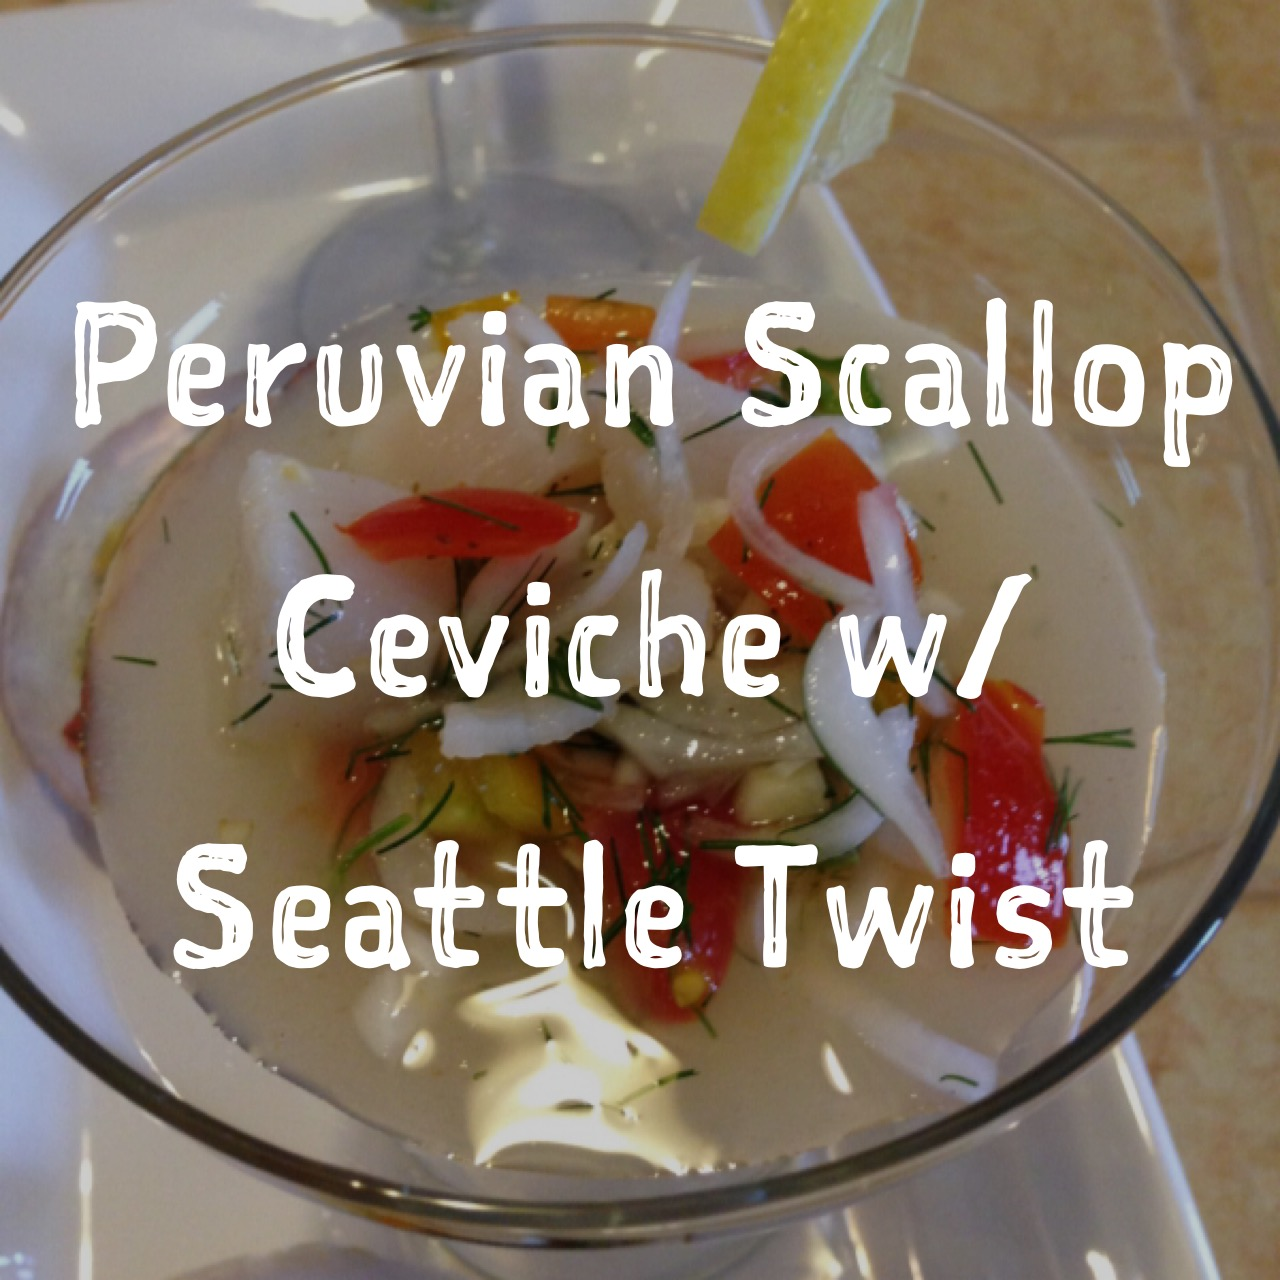 Peruvian Scallop Ceviche w/ Seattle Twist recipe